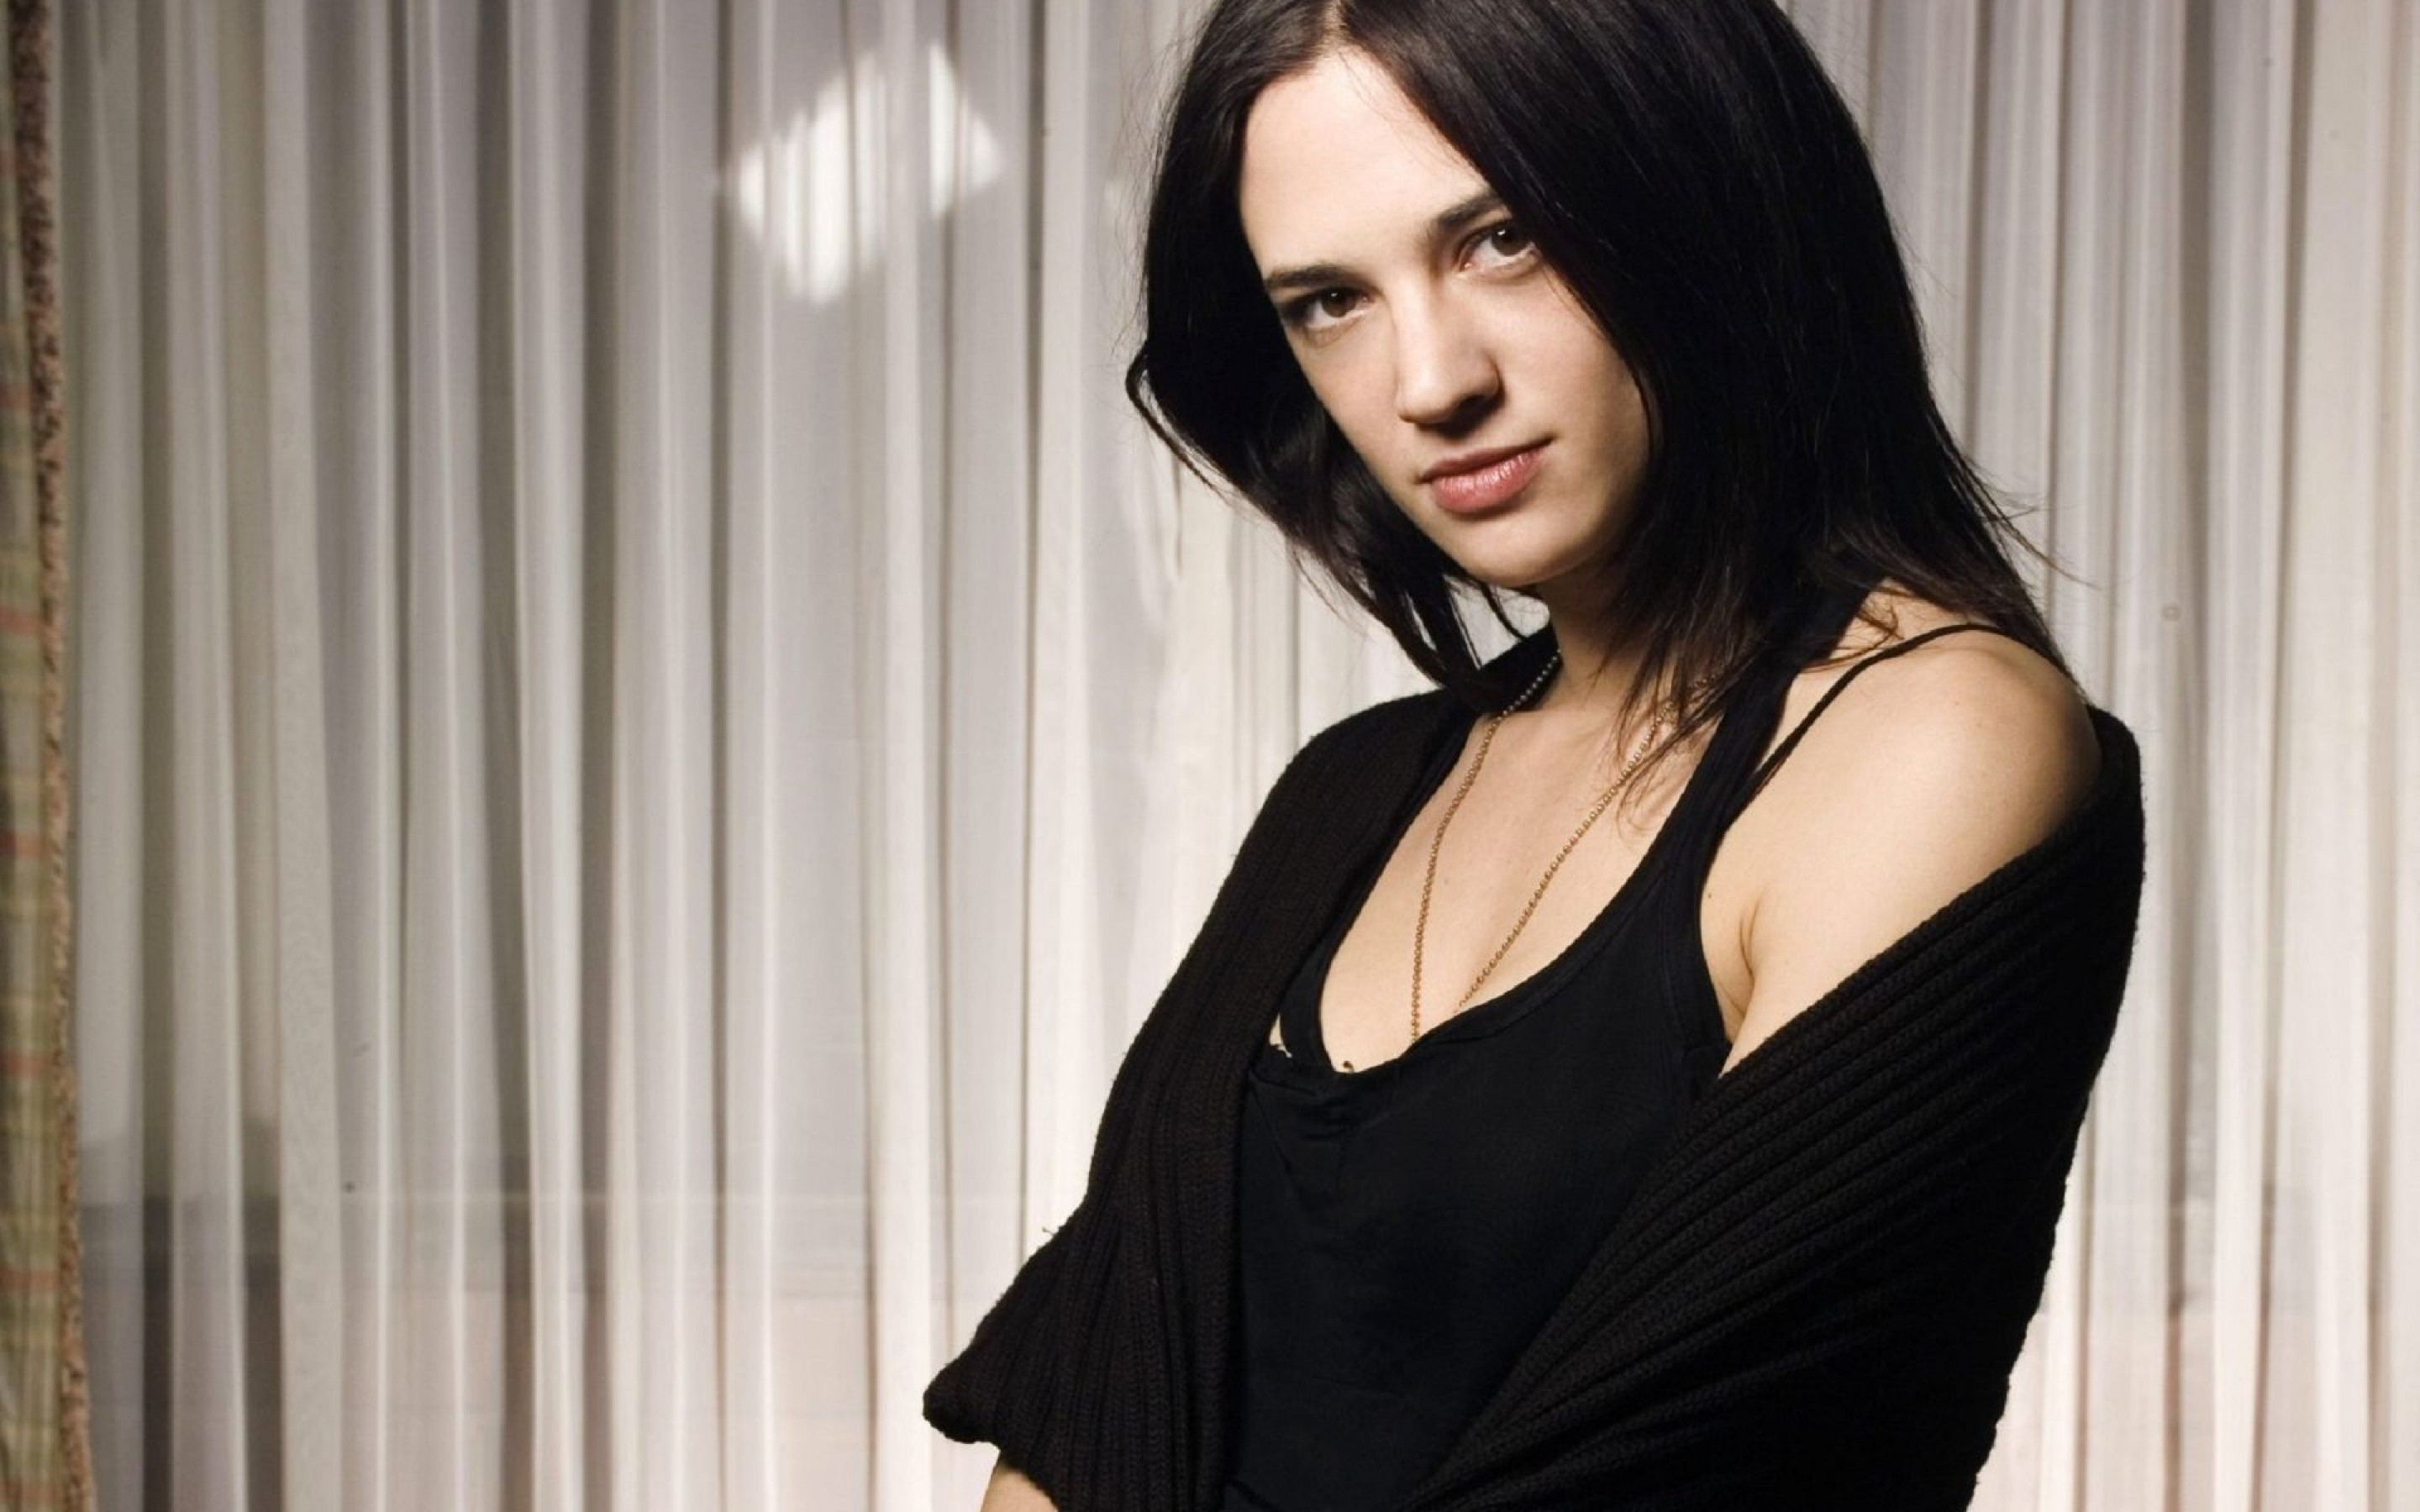 2880x1800 - Asia Argento Wallpapers 2